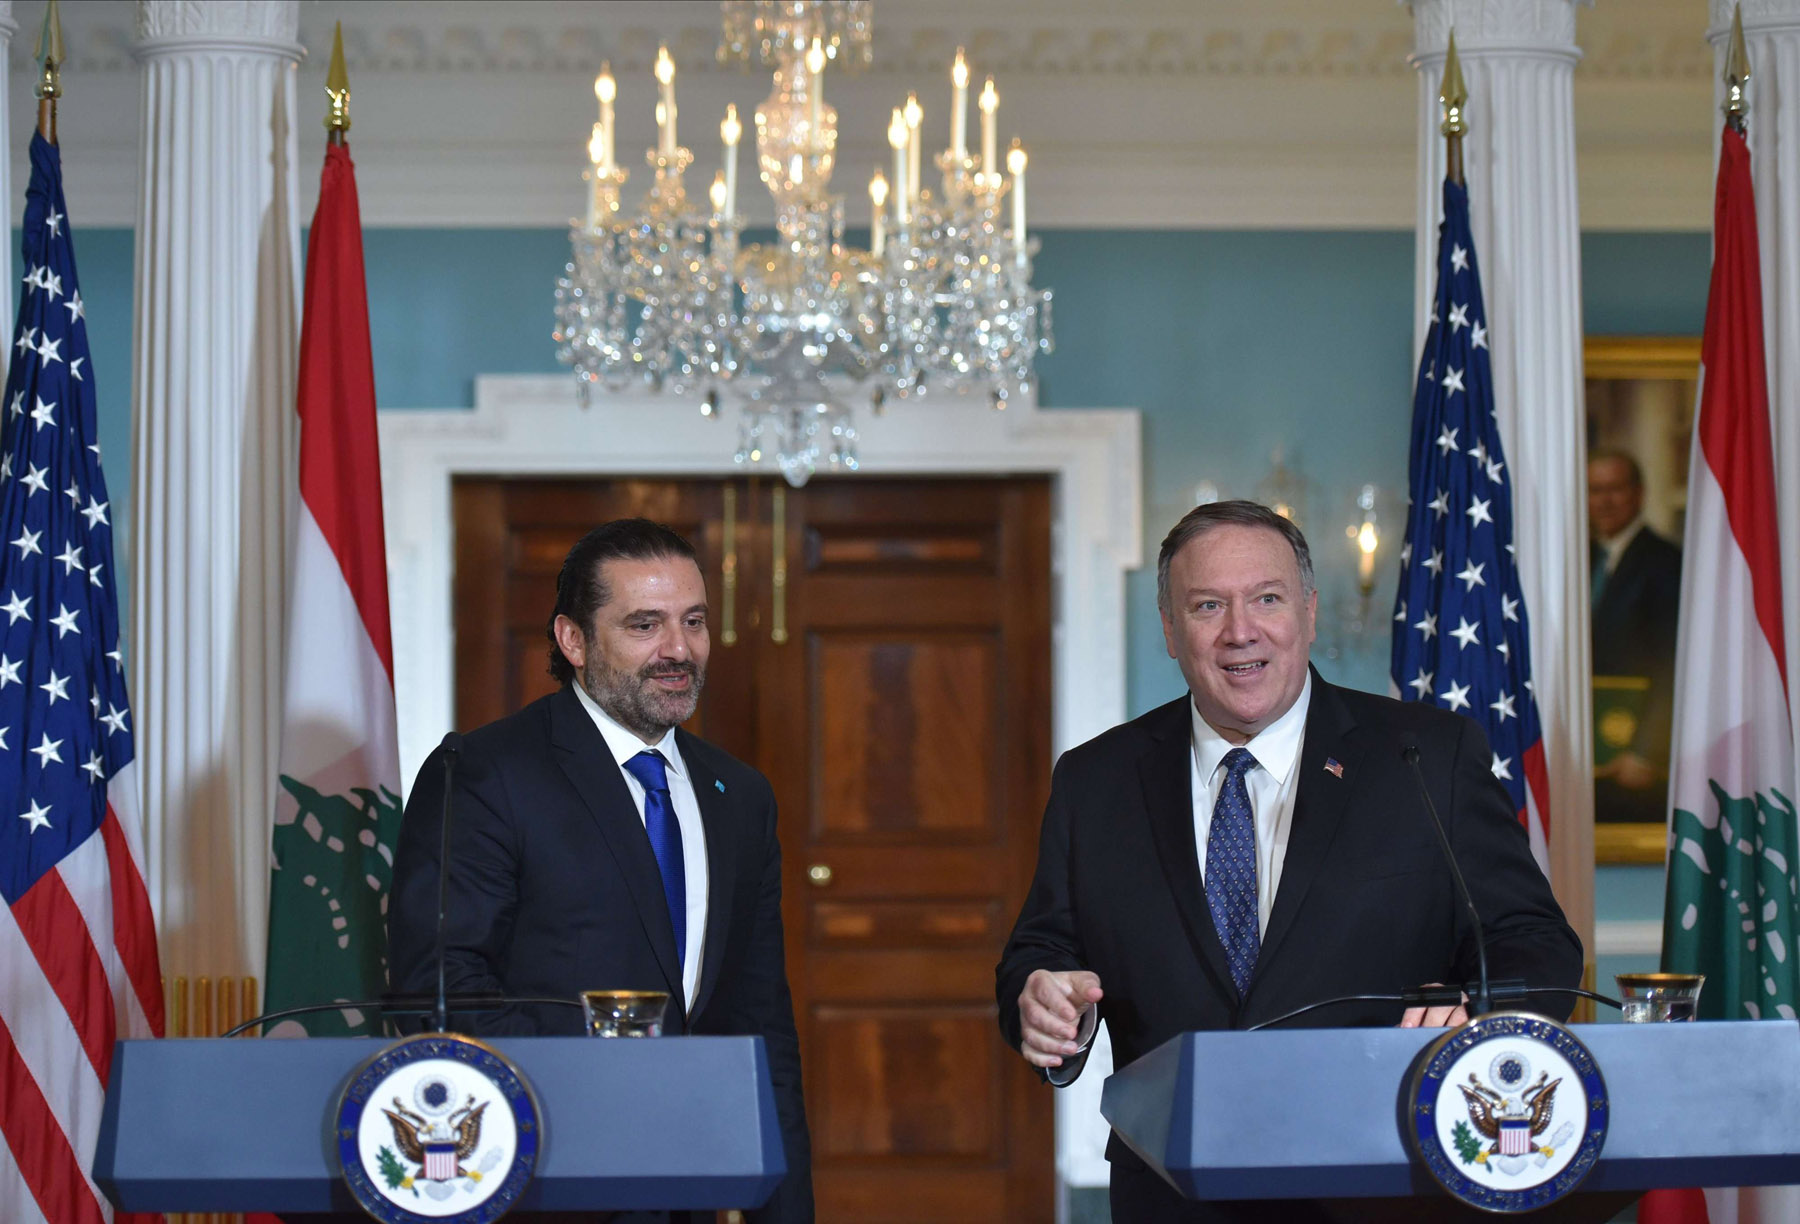 US Secretary of State Mike Pompeo (R) and Lebanon's Prime Minister Saad Hariri speak to the press following a meeting at the State Department in Washington, August 15. (AFP)